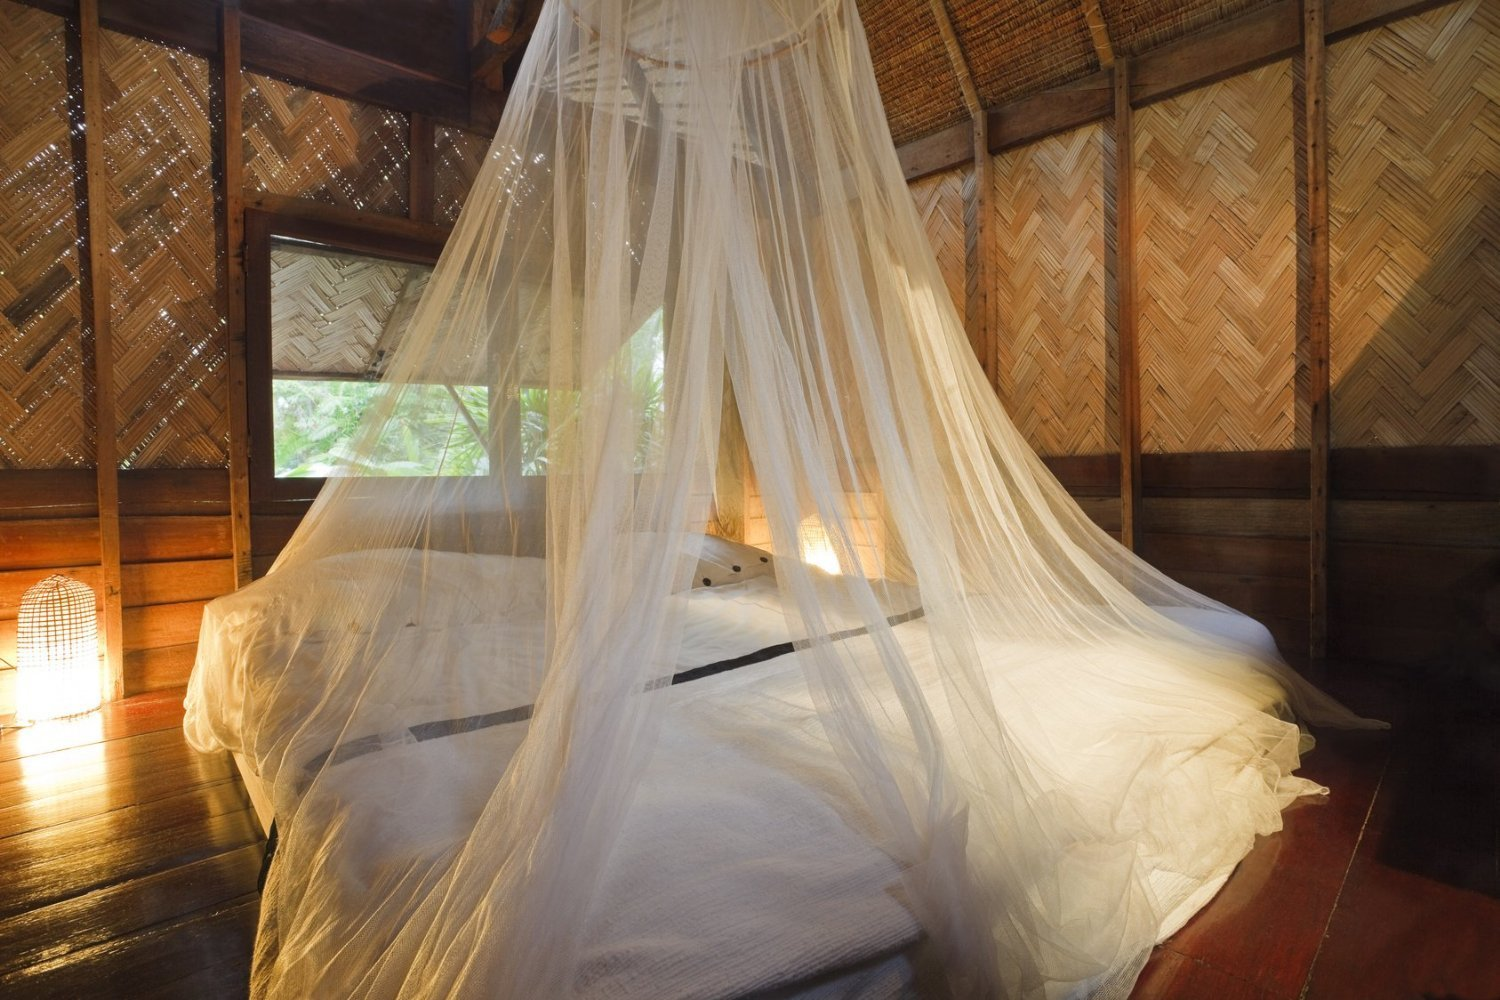 Mosquito Nets 4 U LARGE Mosquito Net Bed Canopy Maximum Insect Net Protection No Skin Irritation Deet ...  sc 1 st  Walmart.com & Nets 4 U LARGE Mosquito Net Bed Canopy Maximum Insect Net ...